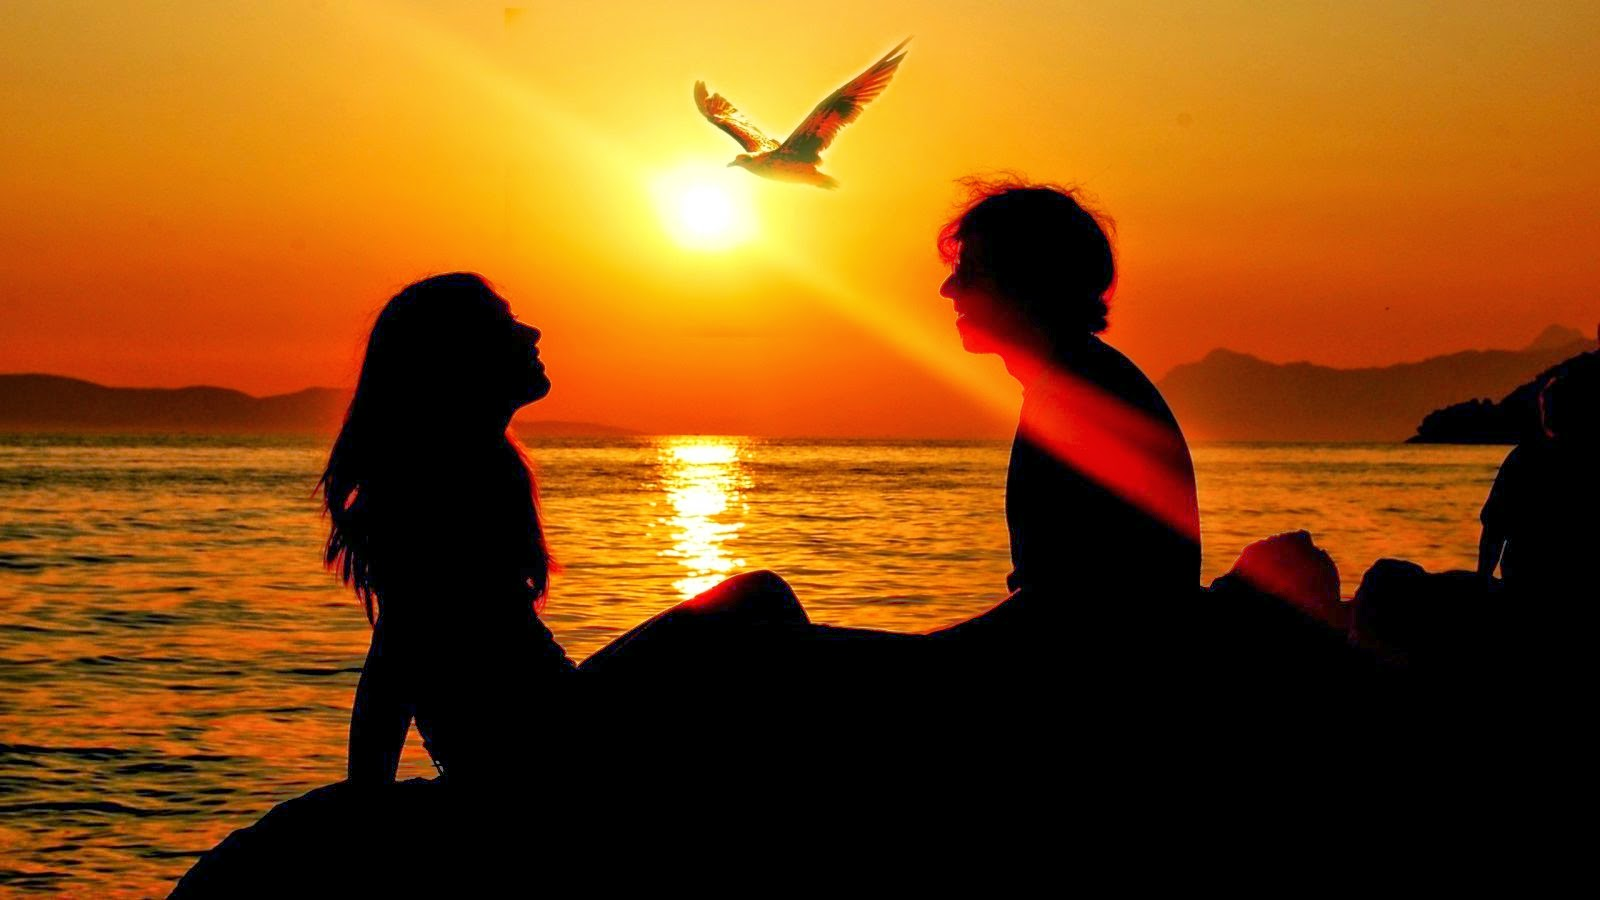 Romantic Pictures The Sunset Love Wallpaper Picture Gallery